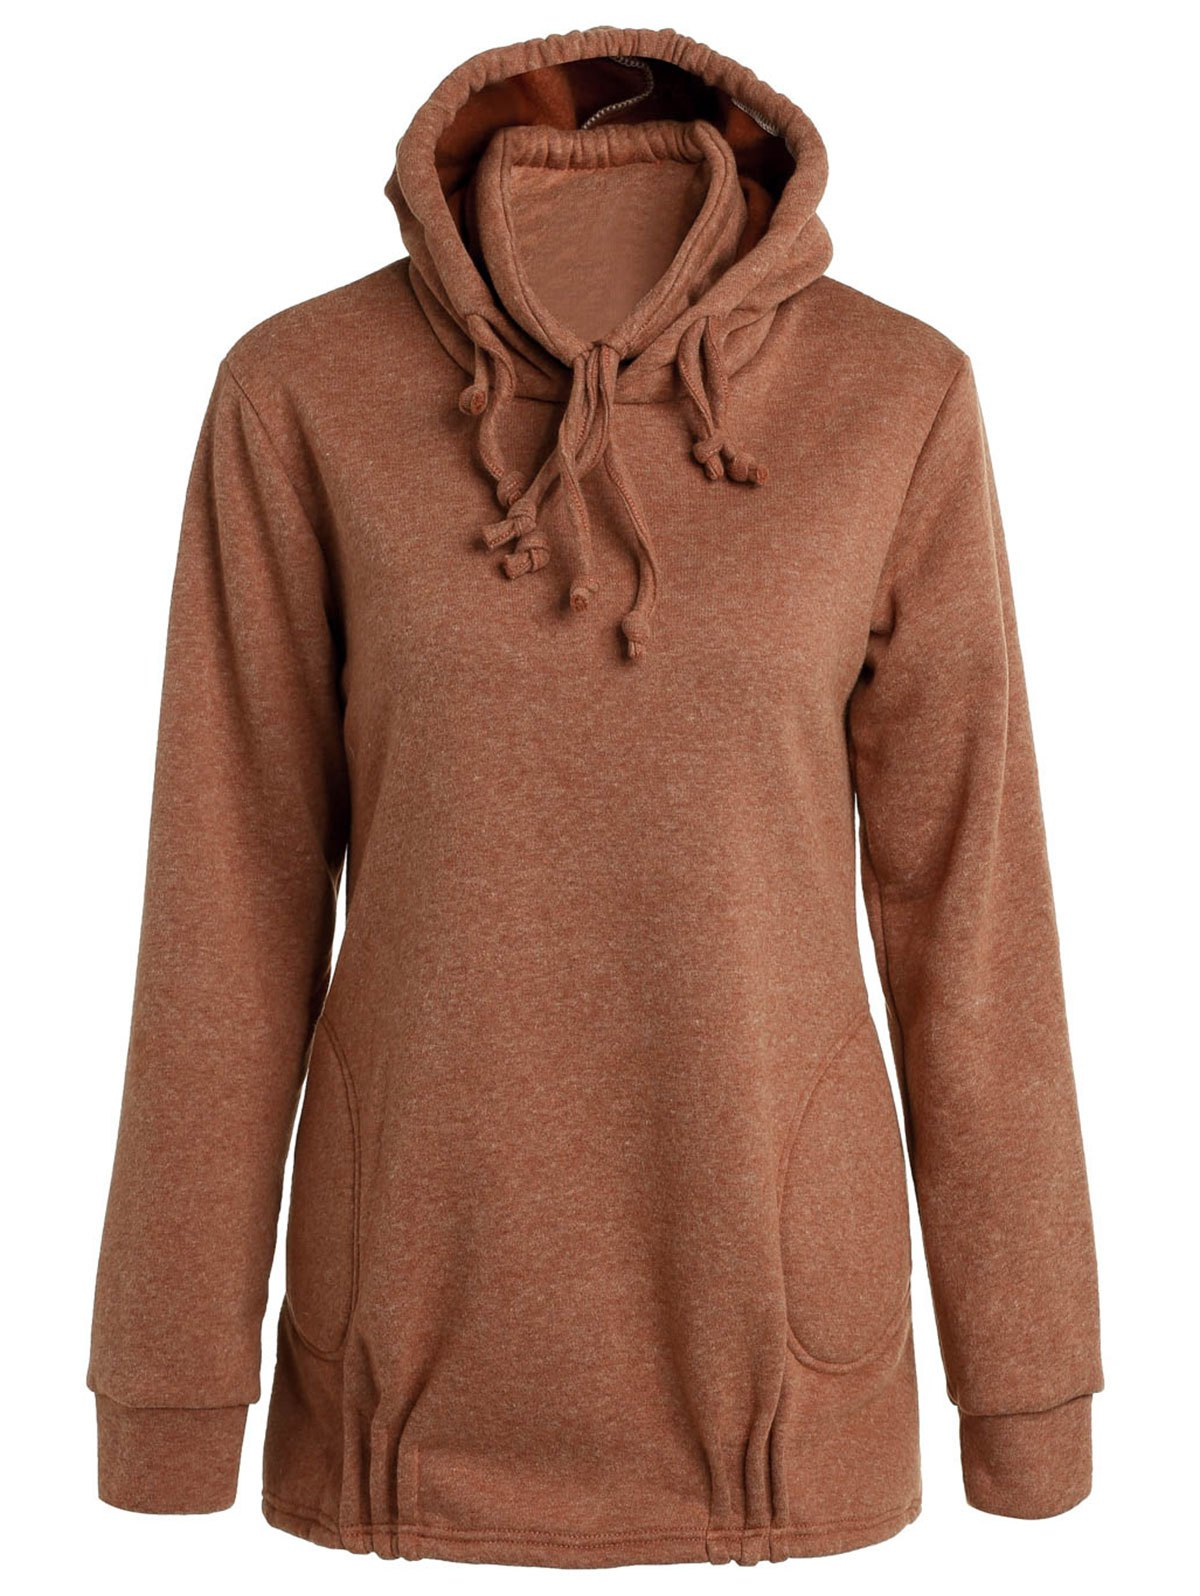 Long Sleeve Solid Color Loose Pullover Hoodie 162148303